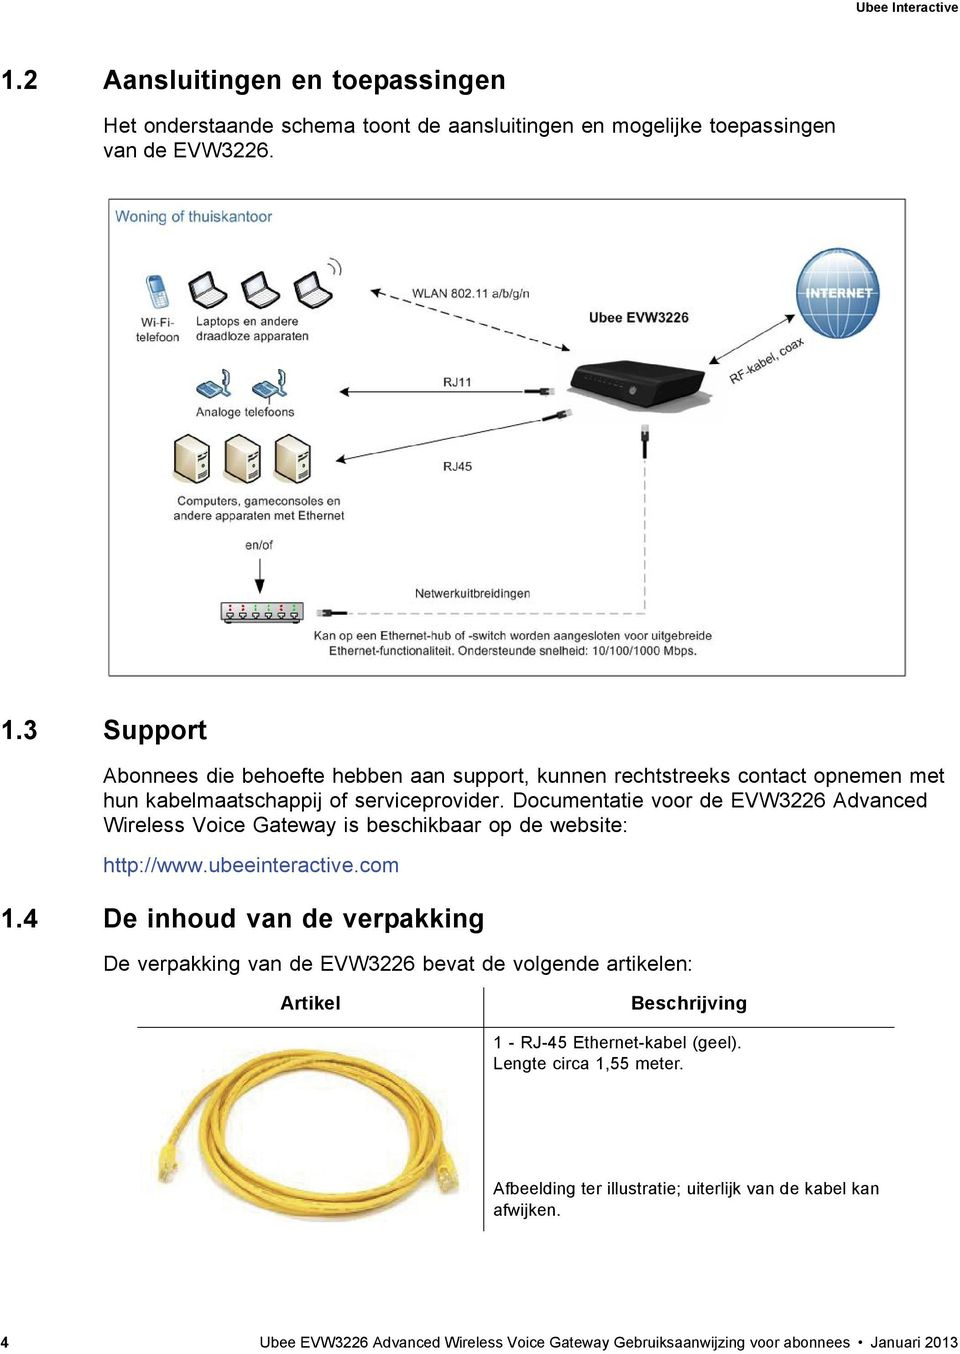 Documentatie voor de EVW3226 Advanced Wireless Voice Gateway is beschikbaar op de website: http://www.ubeeinteractive.com 1.